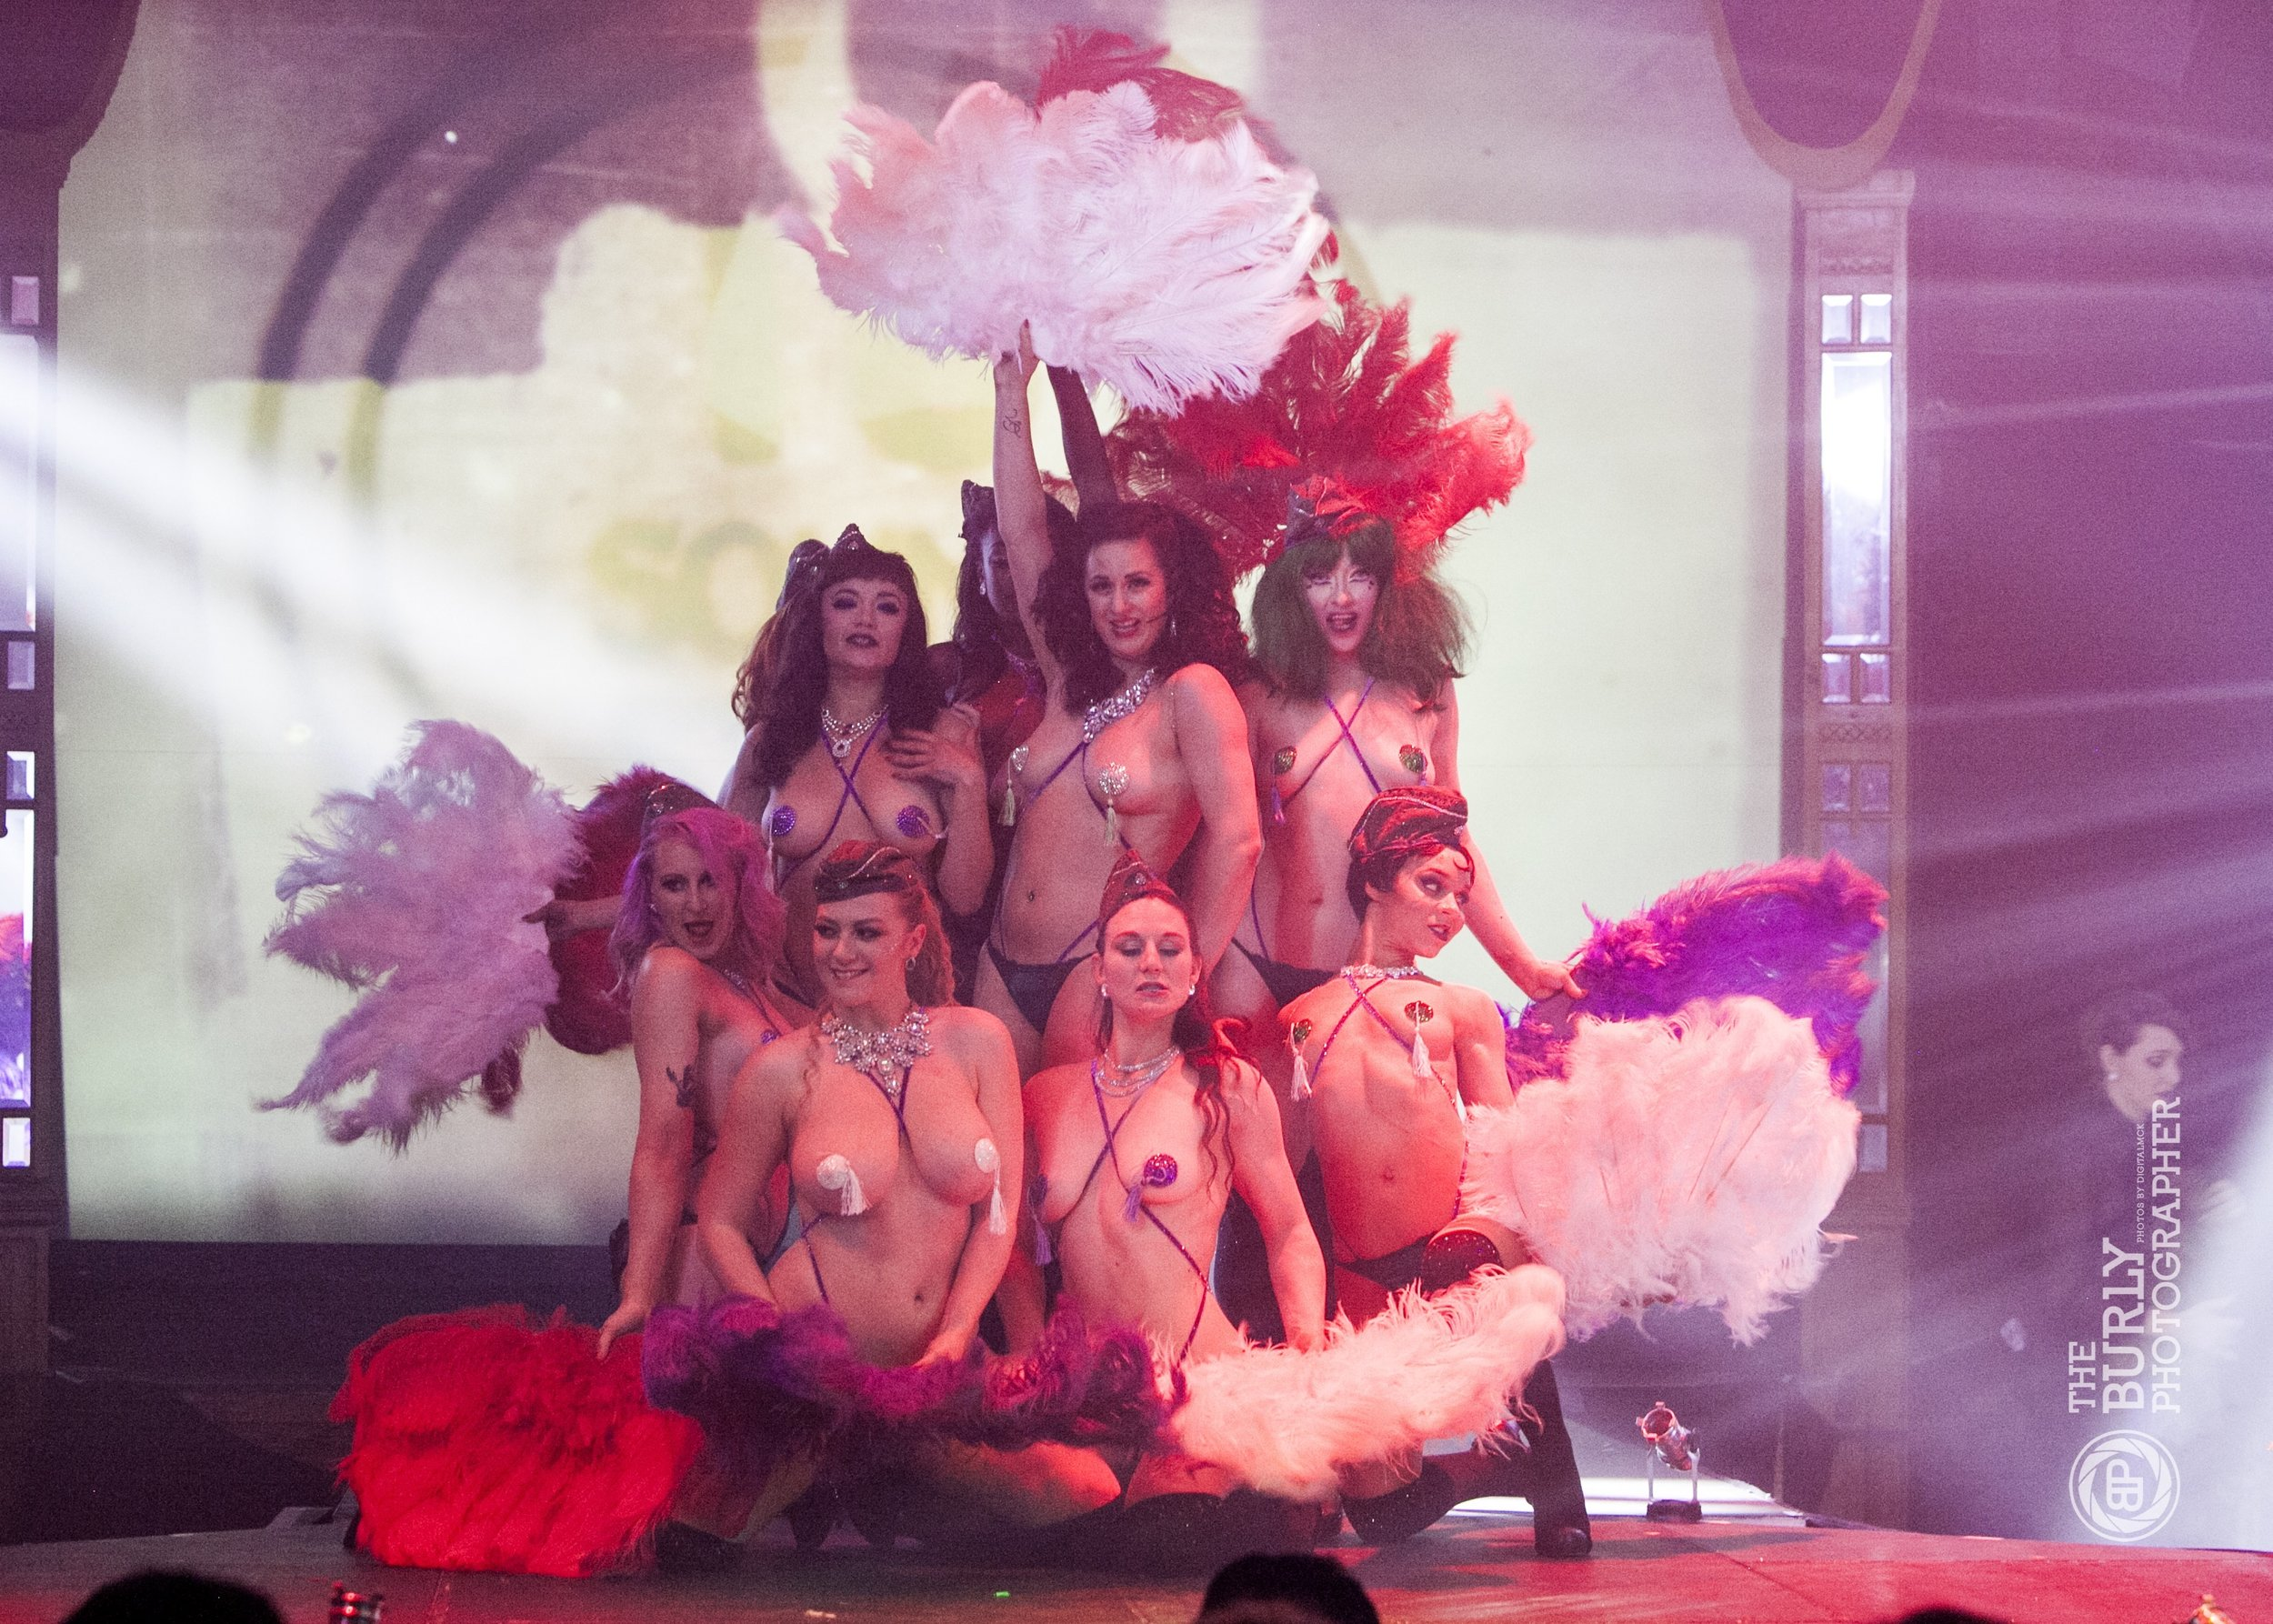 House of Burlesque 2.0 Produced by Tempest Rose at House of Burlesque Ltd and Alex Rochford at The Producers UK